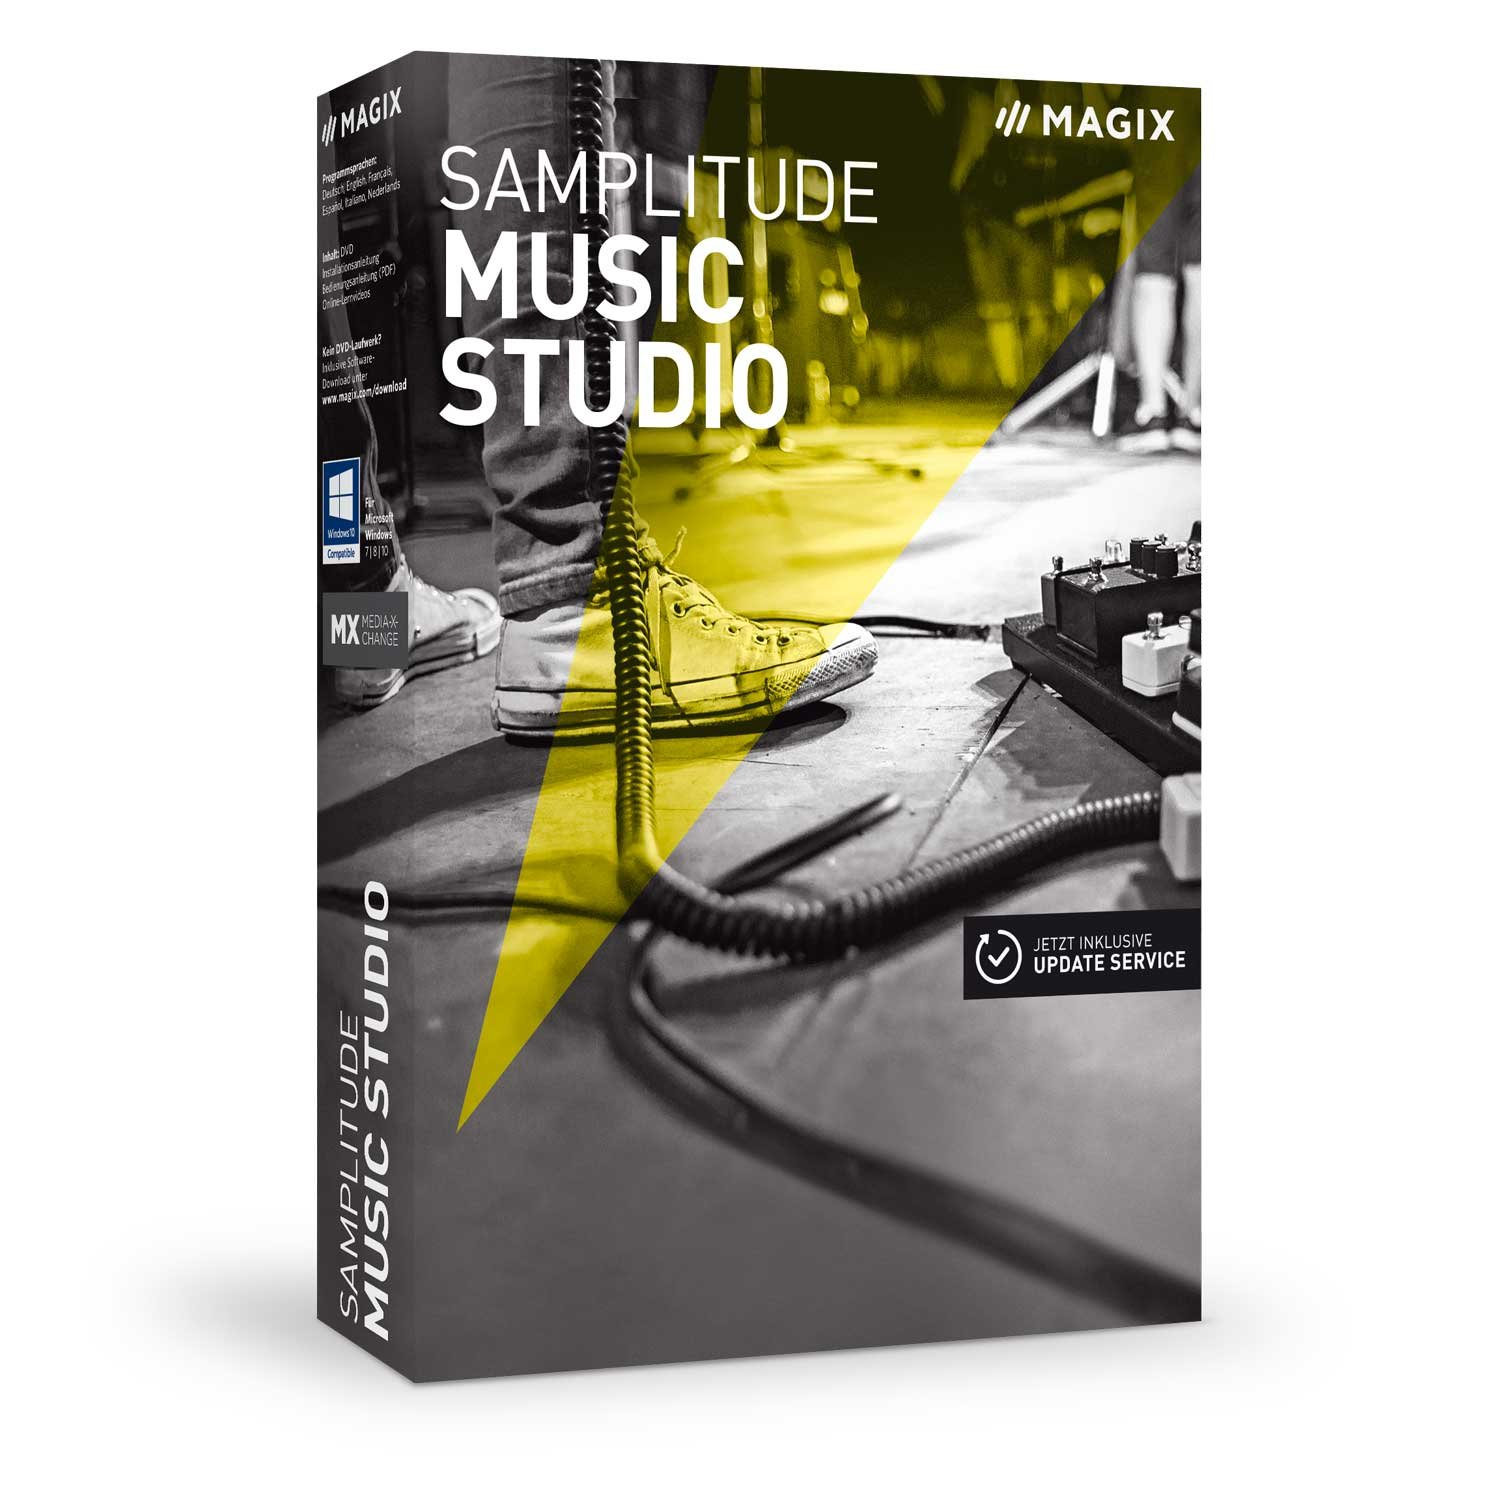 MAGIX Samplitude Music Studio 2017 by MAGIX